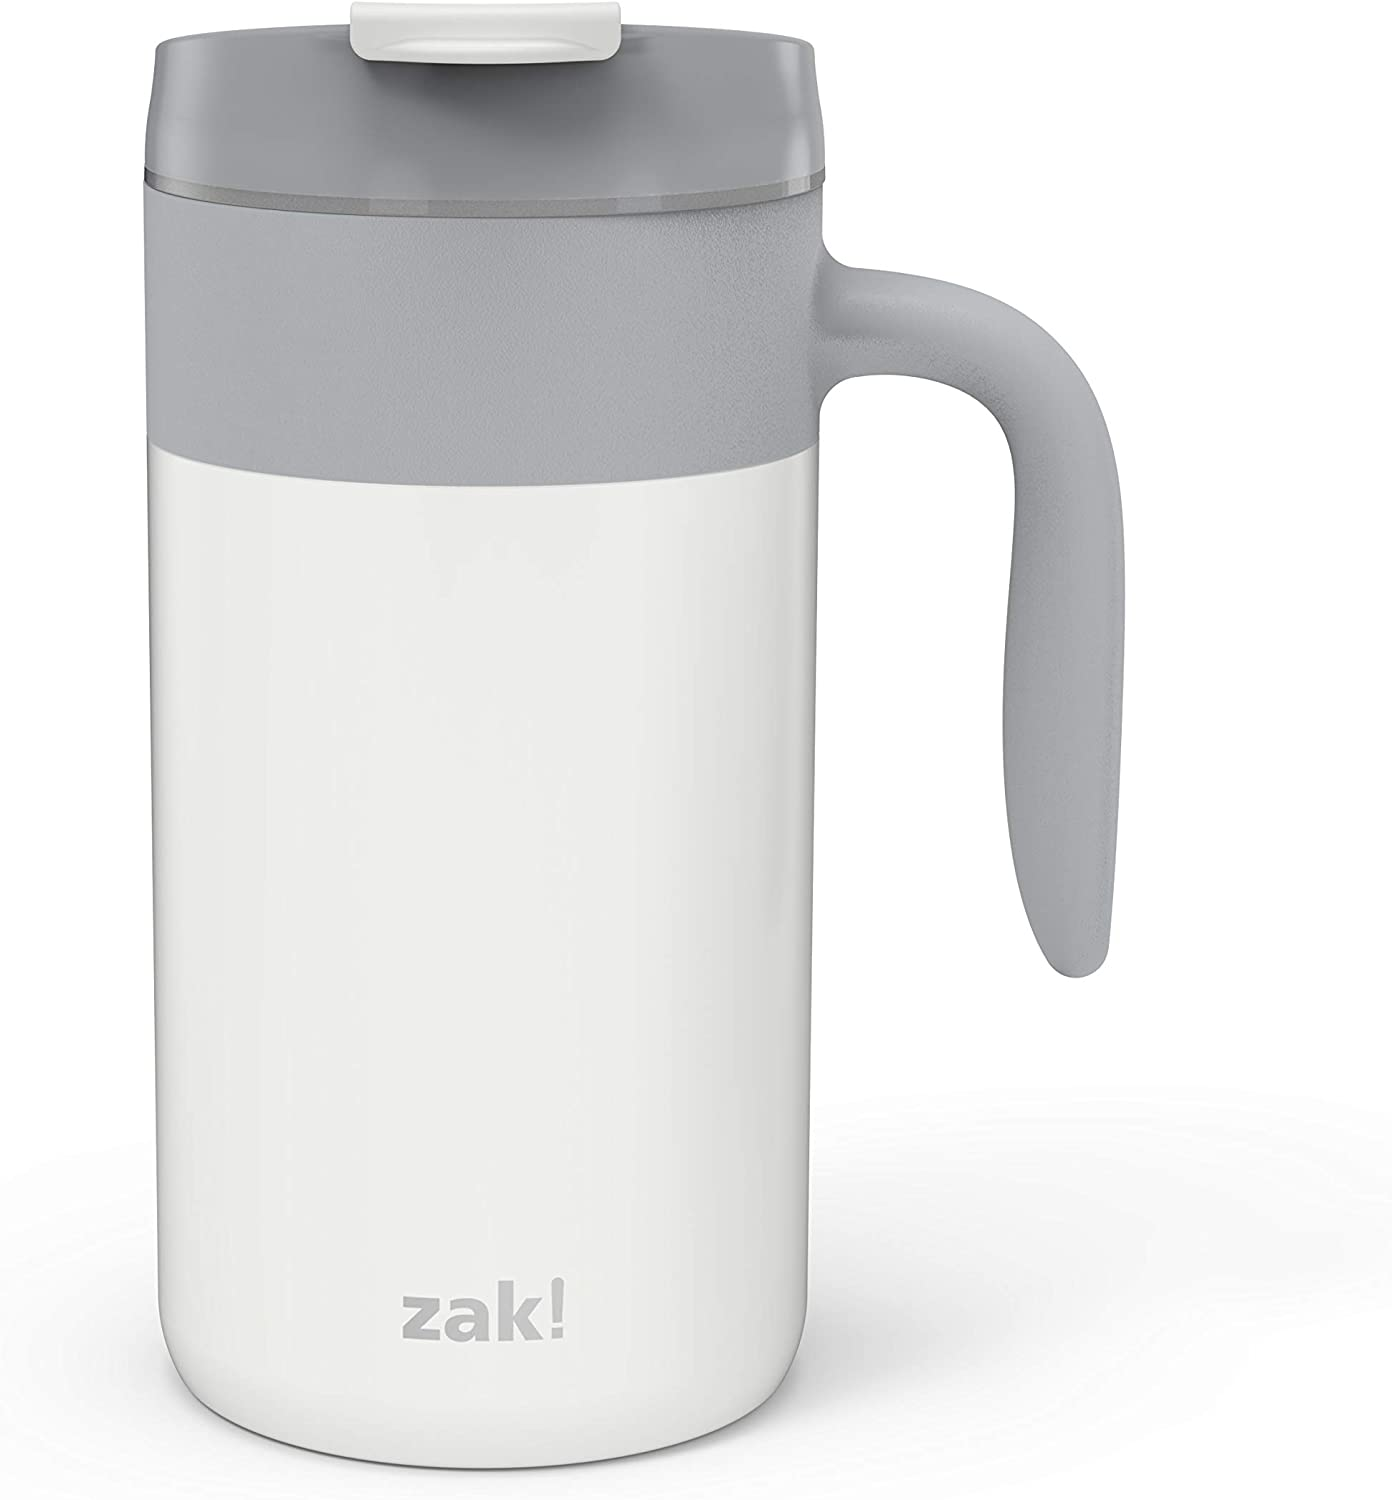 Zak Designs Aberdeen Stainless Steel Double Wall Vacuum Insulated Mug with Handle and Leak Proof Flip Top, Ergonomic Handle Coffee Mug with Screw on Lid is Easy to Clean (20oz, Gray, 18/8, BPA Free)